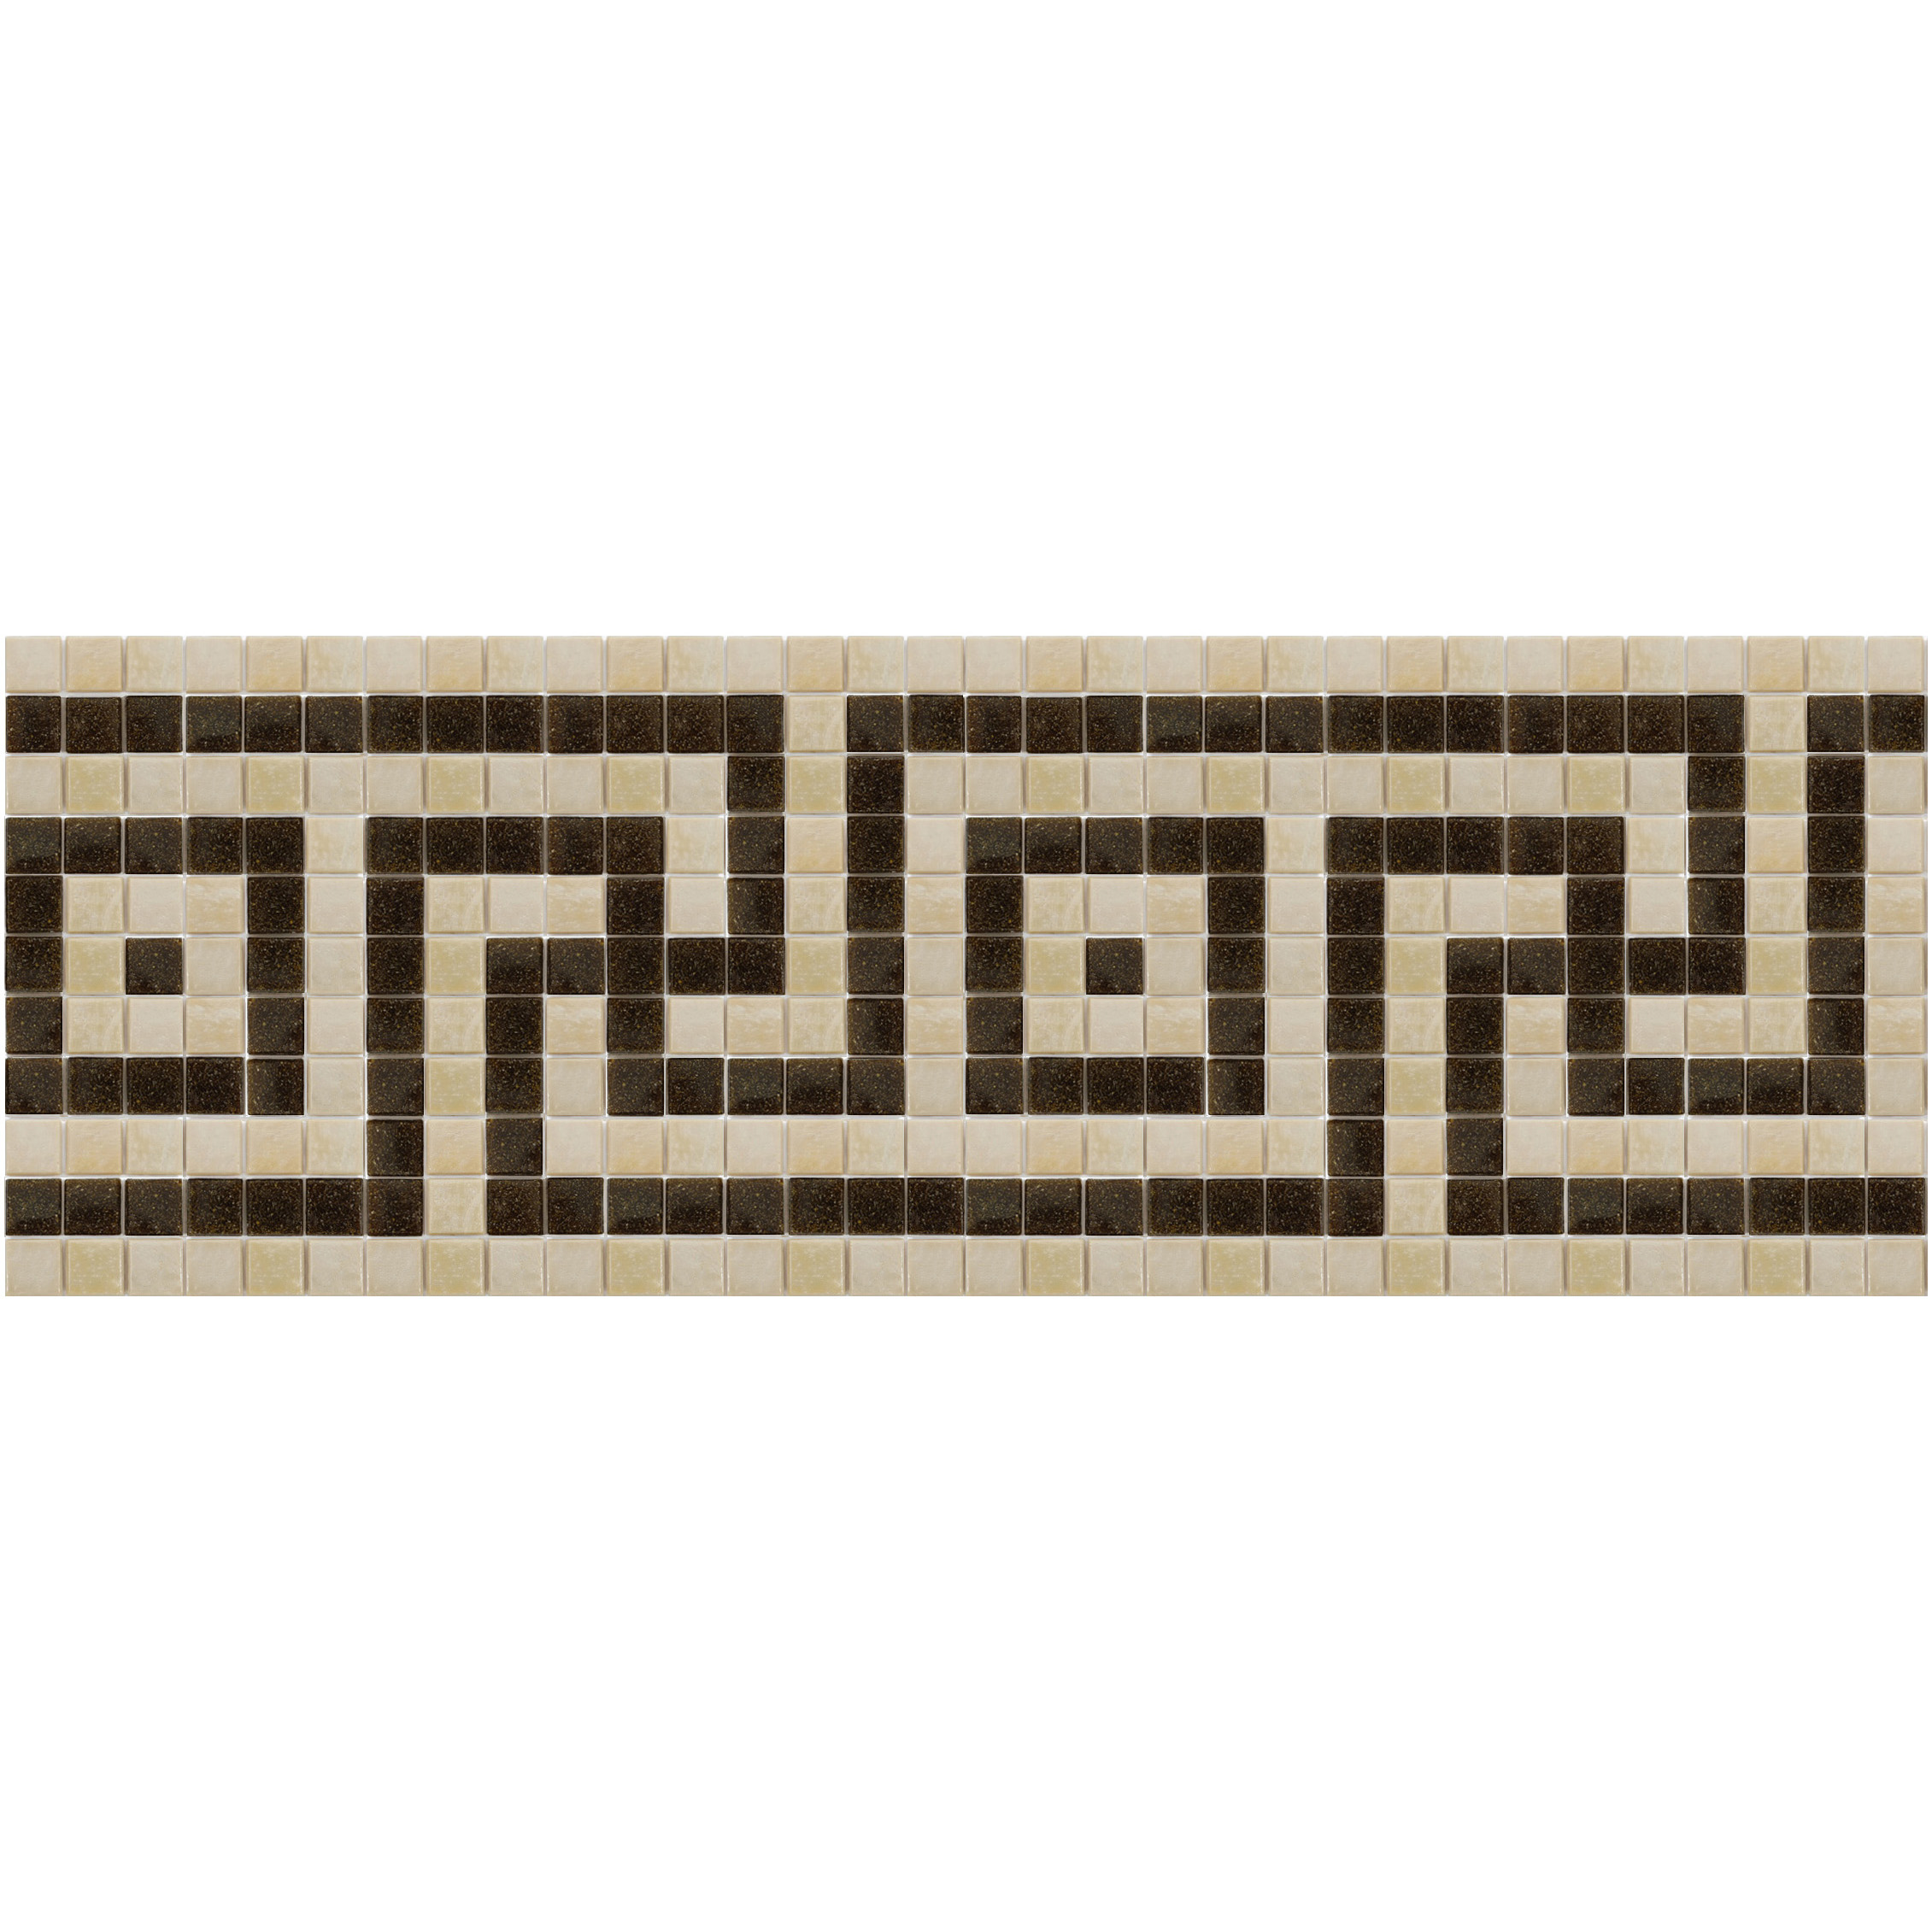 "Macedonia Glass Mosaic Waterline or Border 9"" High, 1 Lineal Foot"